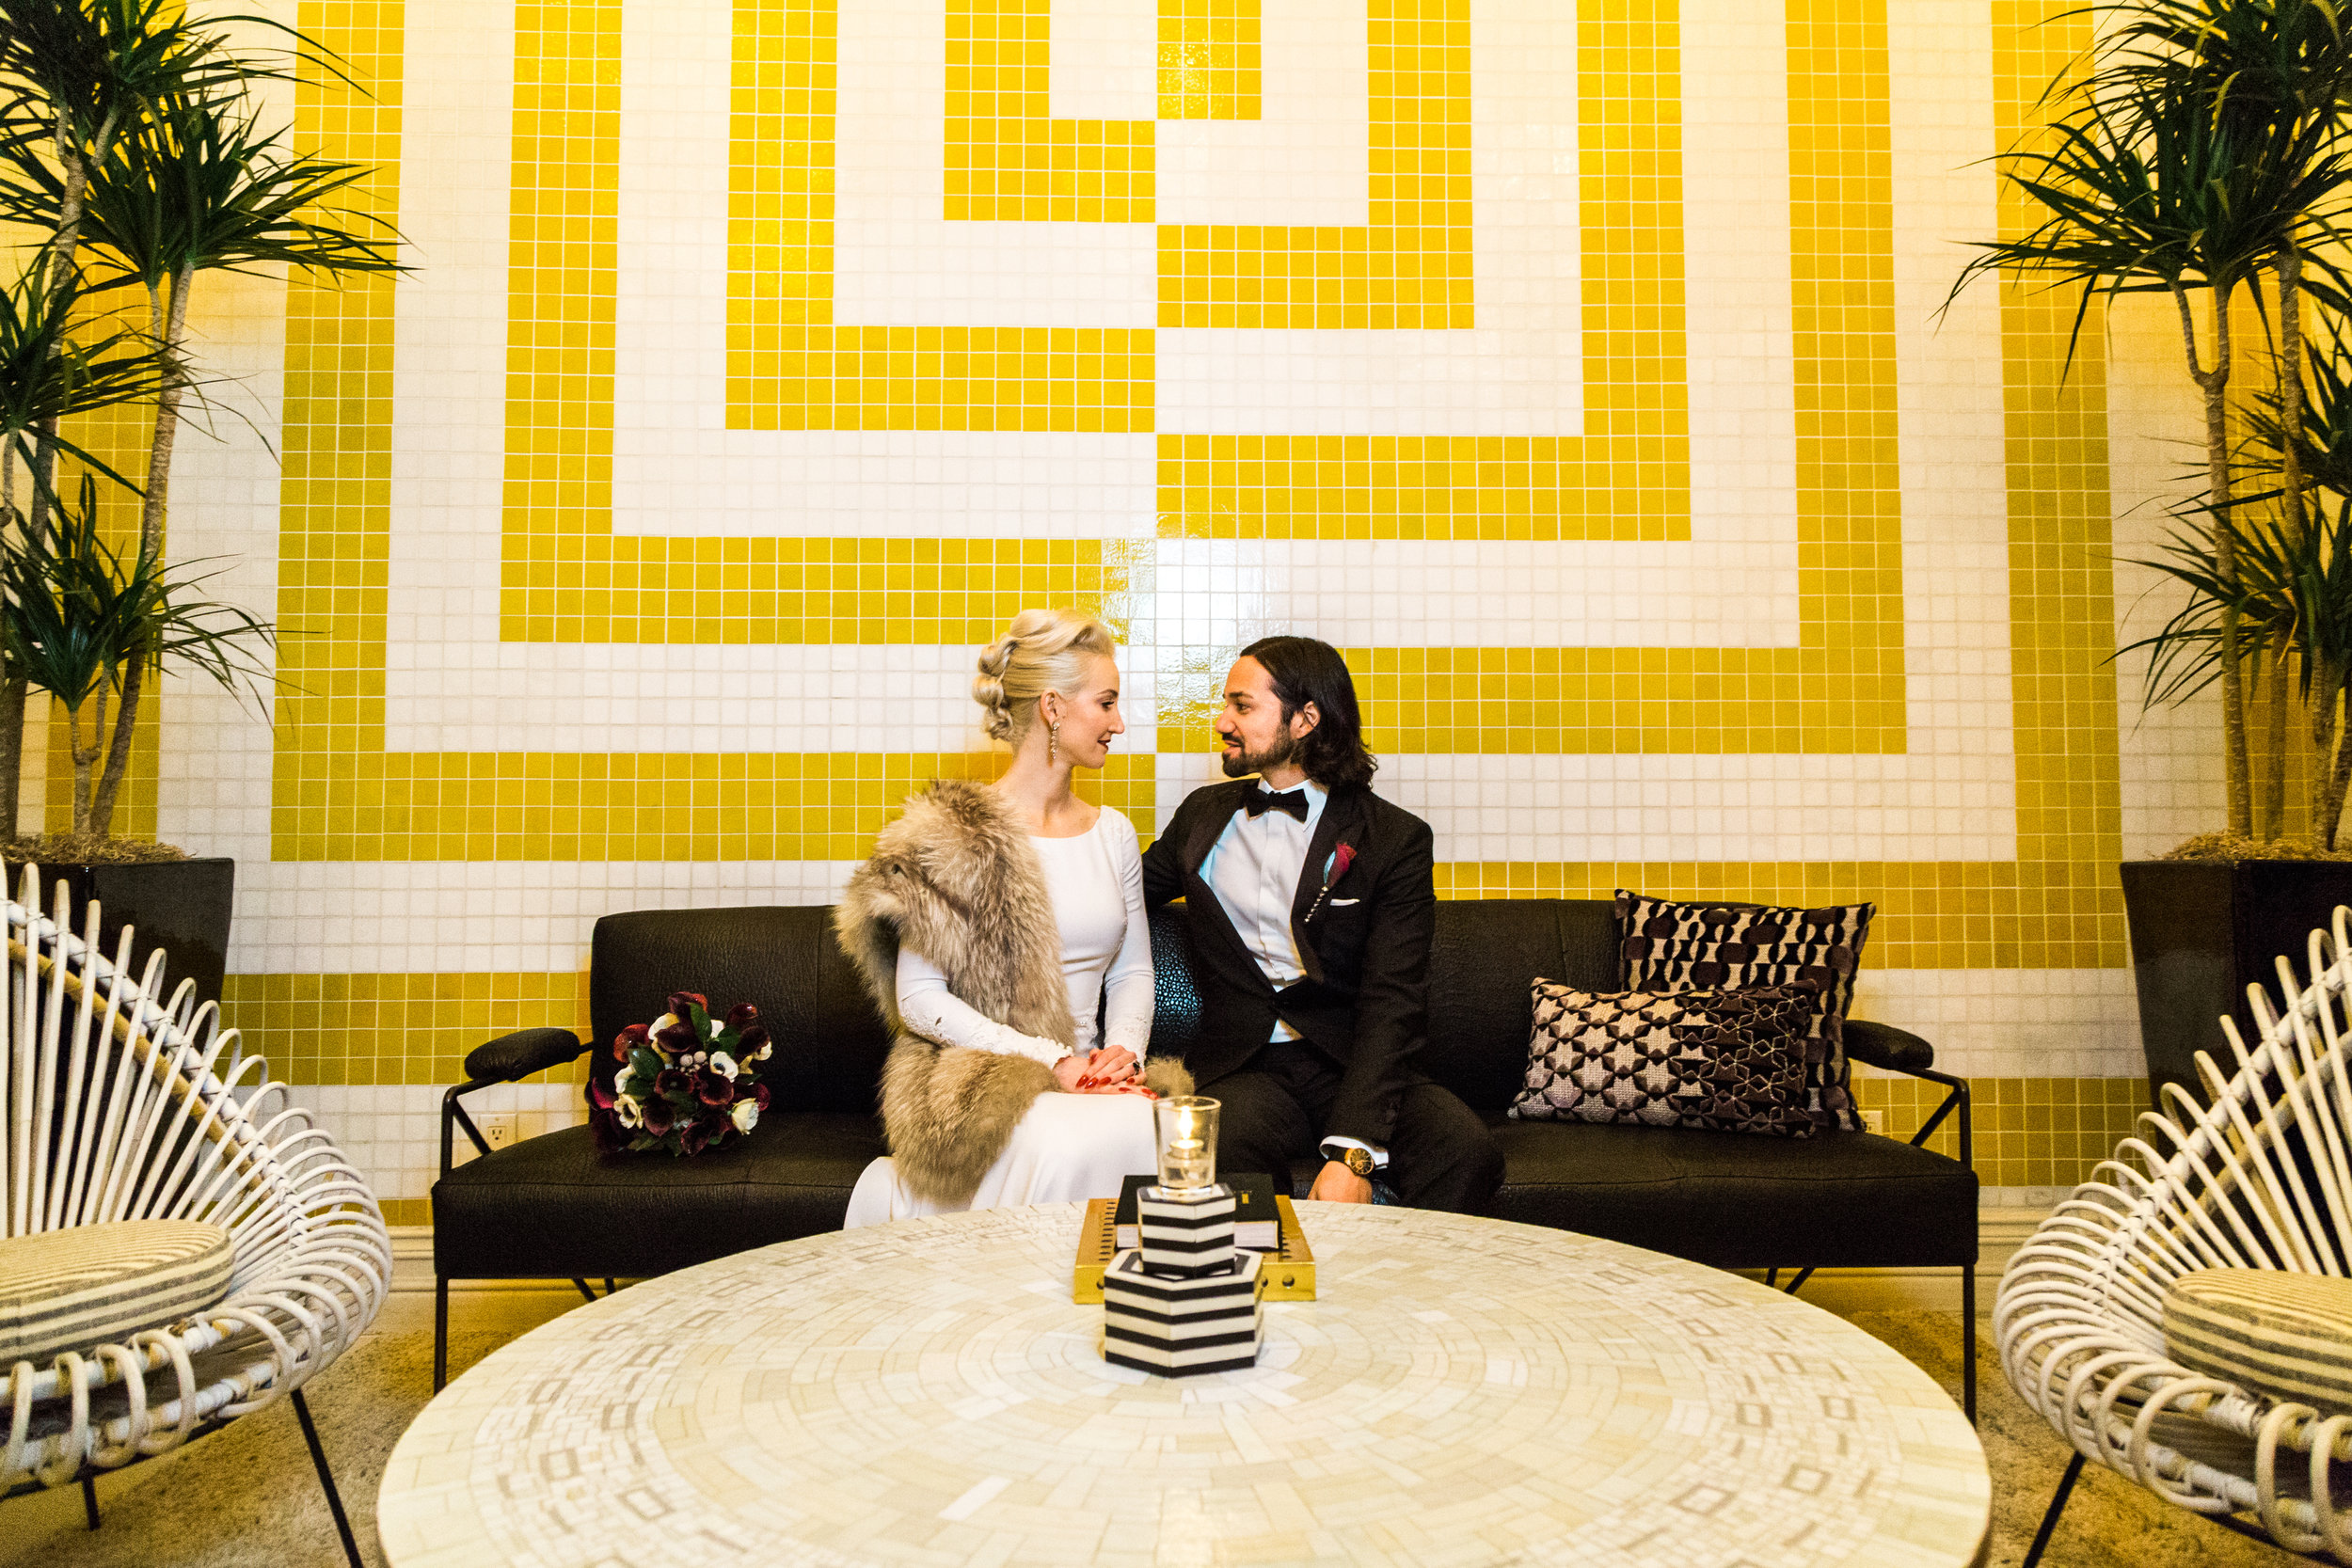 Modern Black and White Wedding in Palm Springs | Ashley La Prade Photography | Michelle Garibay Events